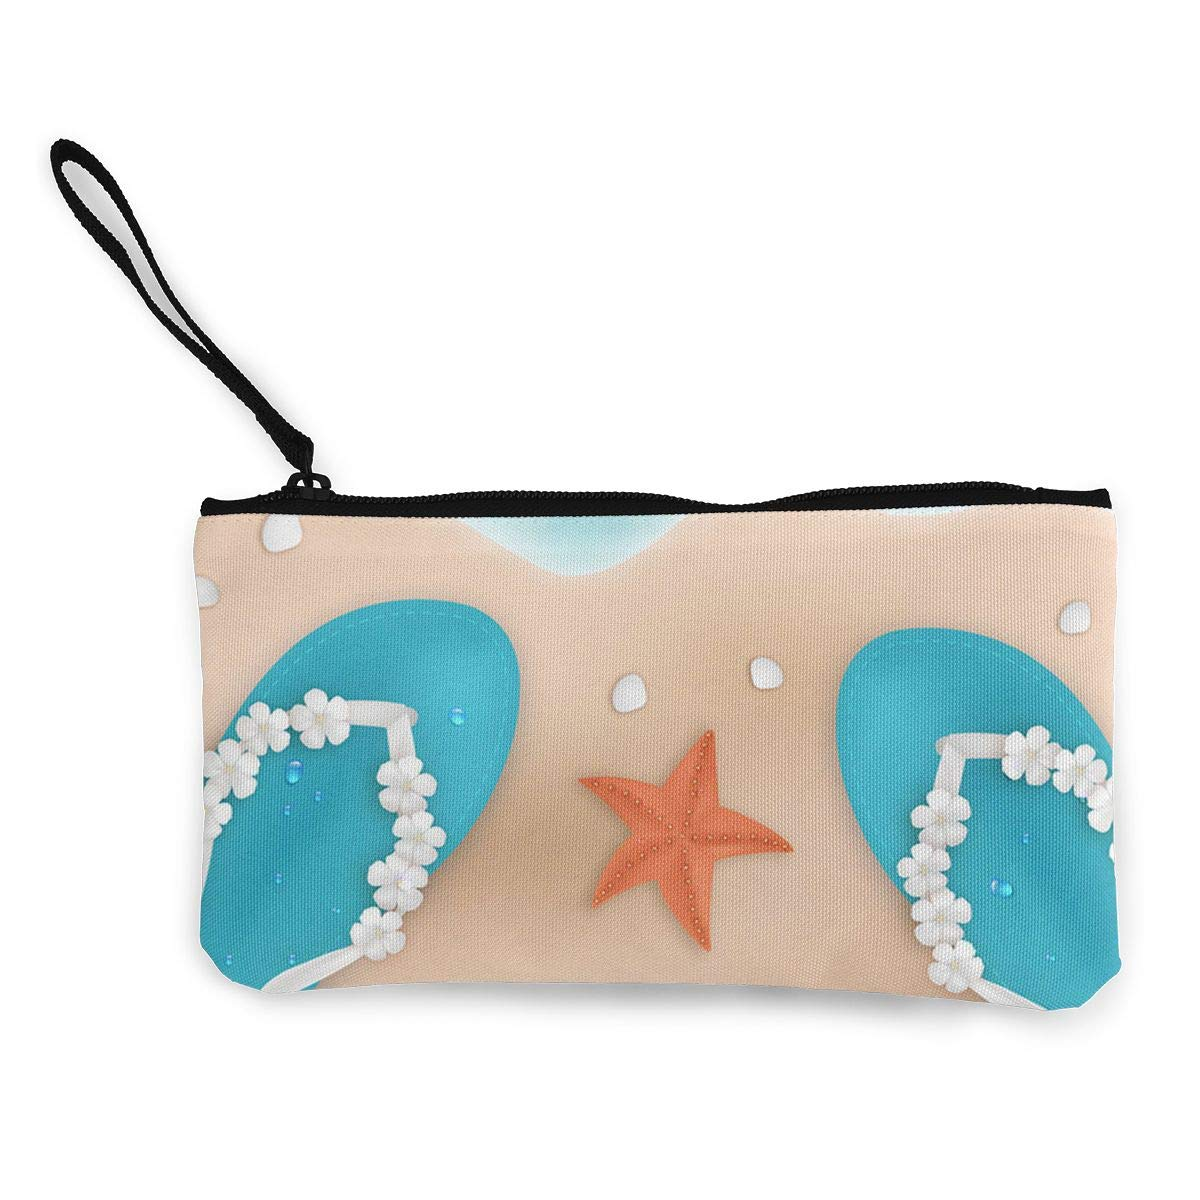 DH14hjsdDEE The Summer On The Beach Zipper Canvas Coin Purse Wallet Make Up Bag Cellphone Bag With Handle